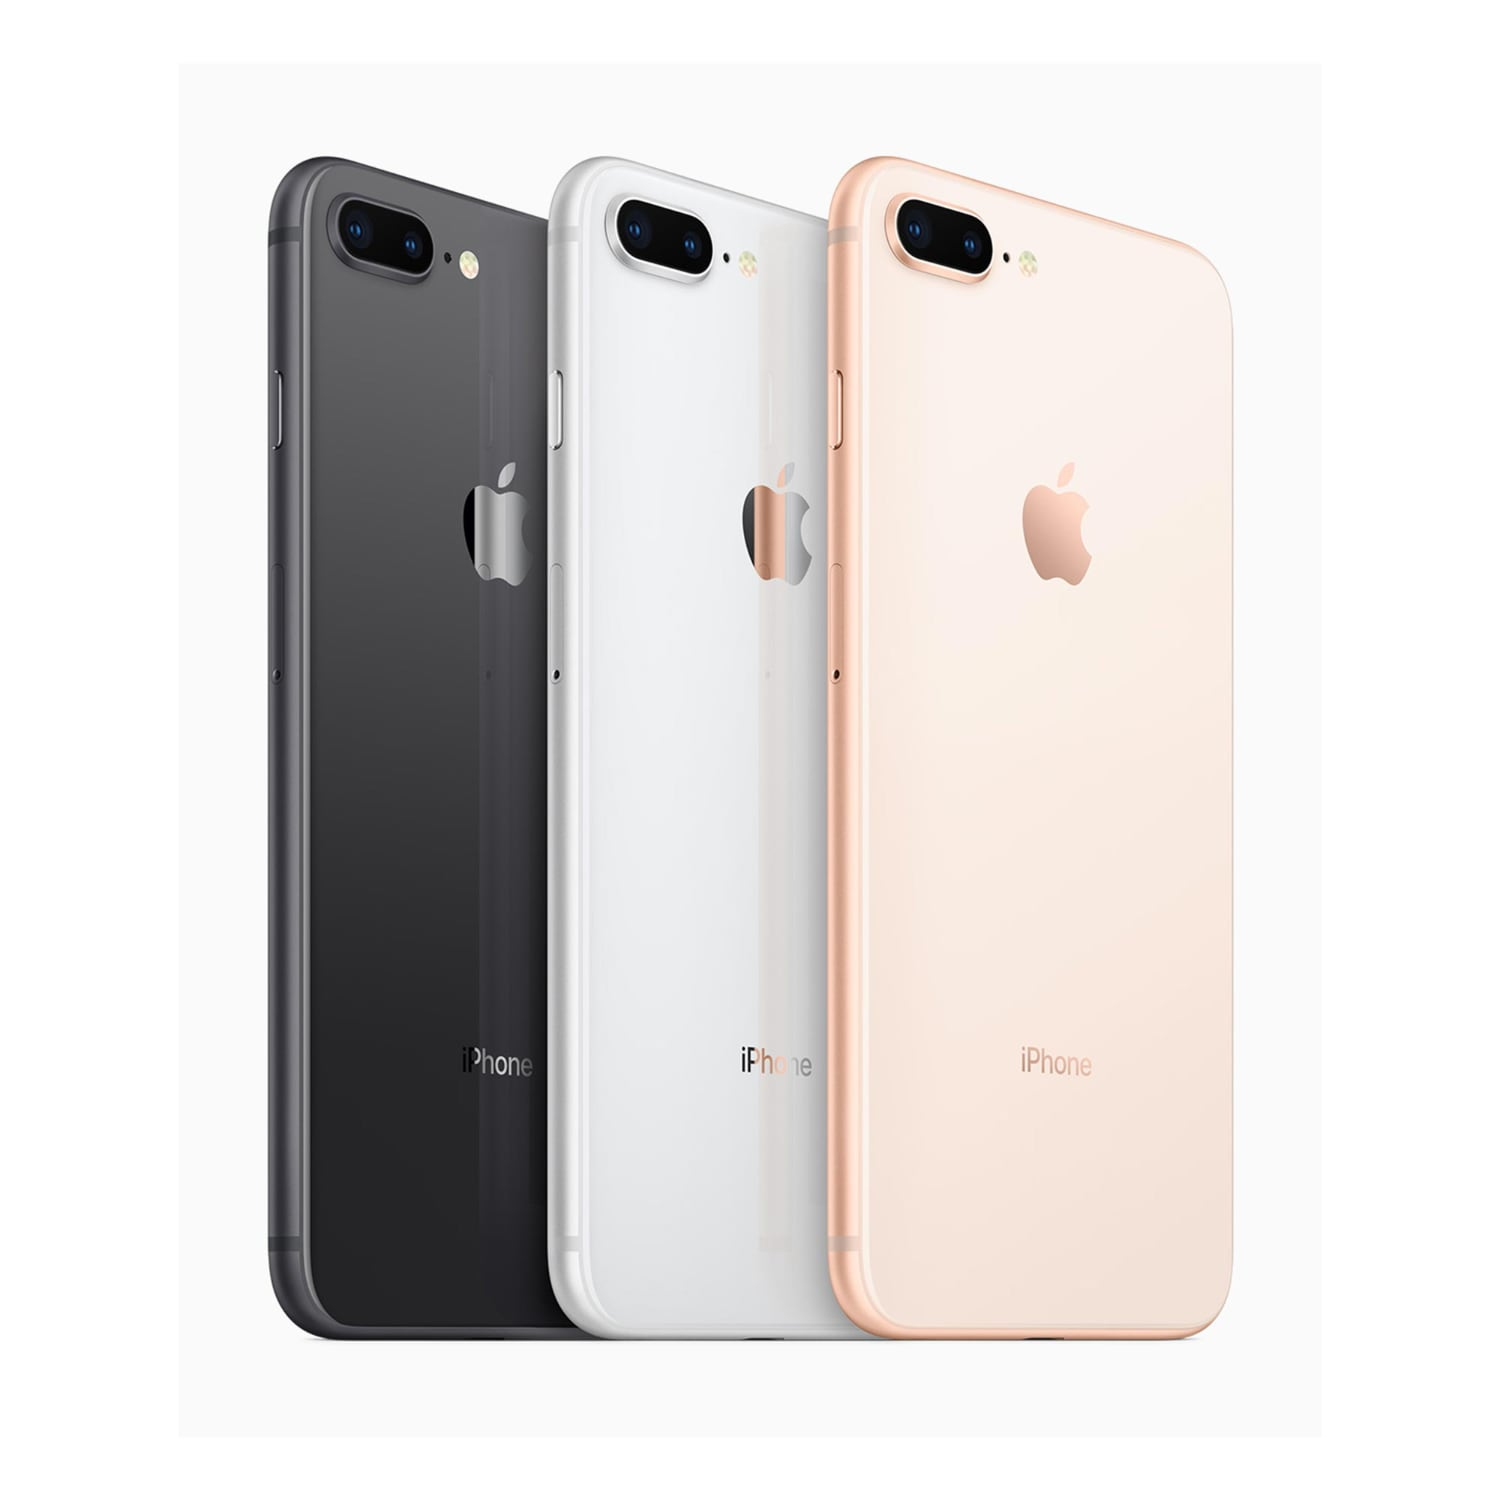 Apple Iphone Pricing And Comparison Mac Prices New Zealand